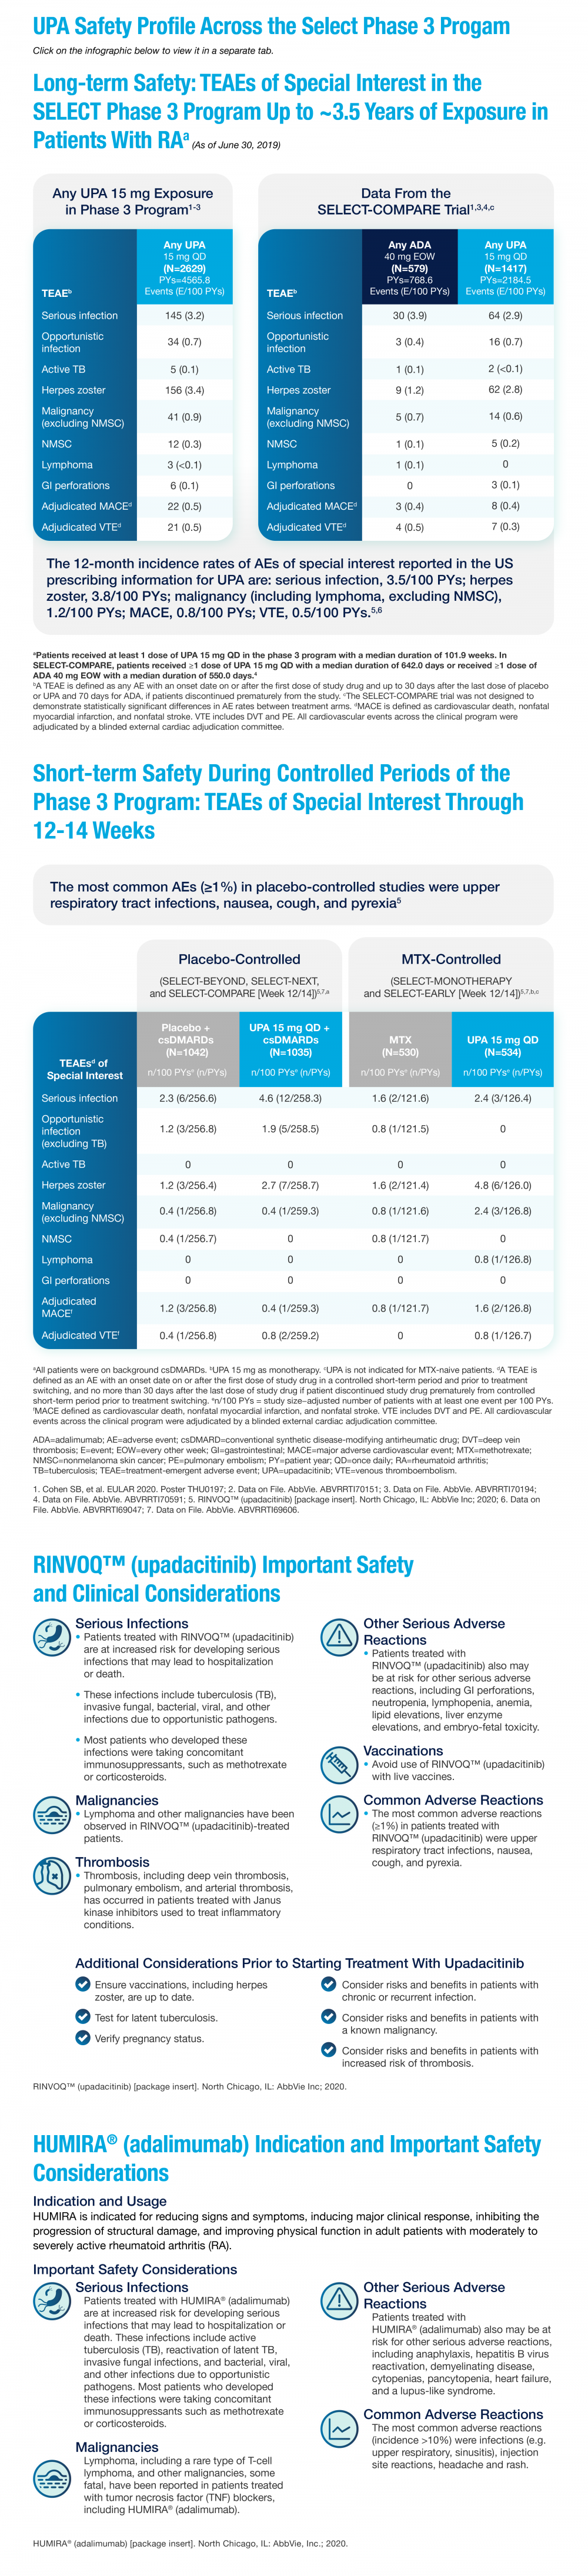 UPA Safety Profile Across the Select Phase 3 Program